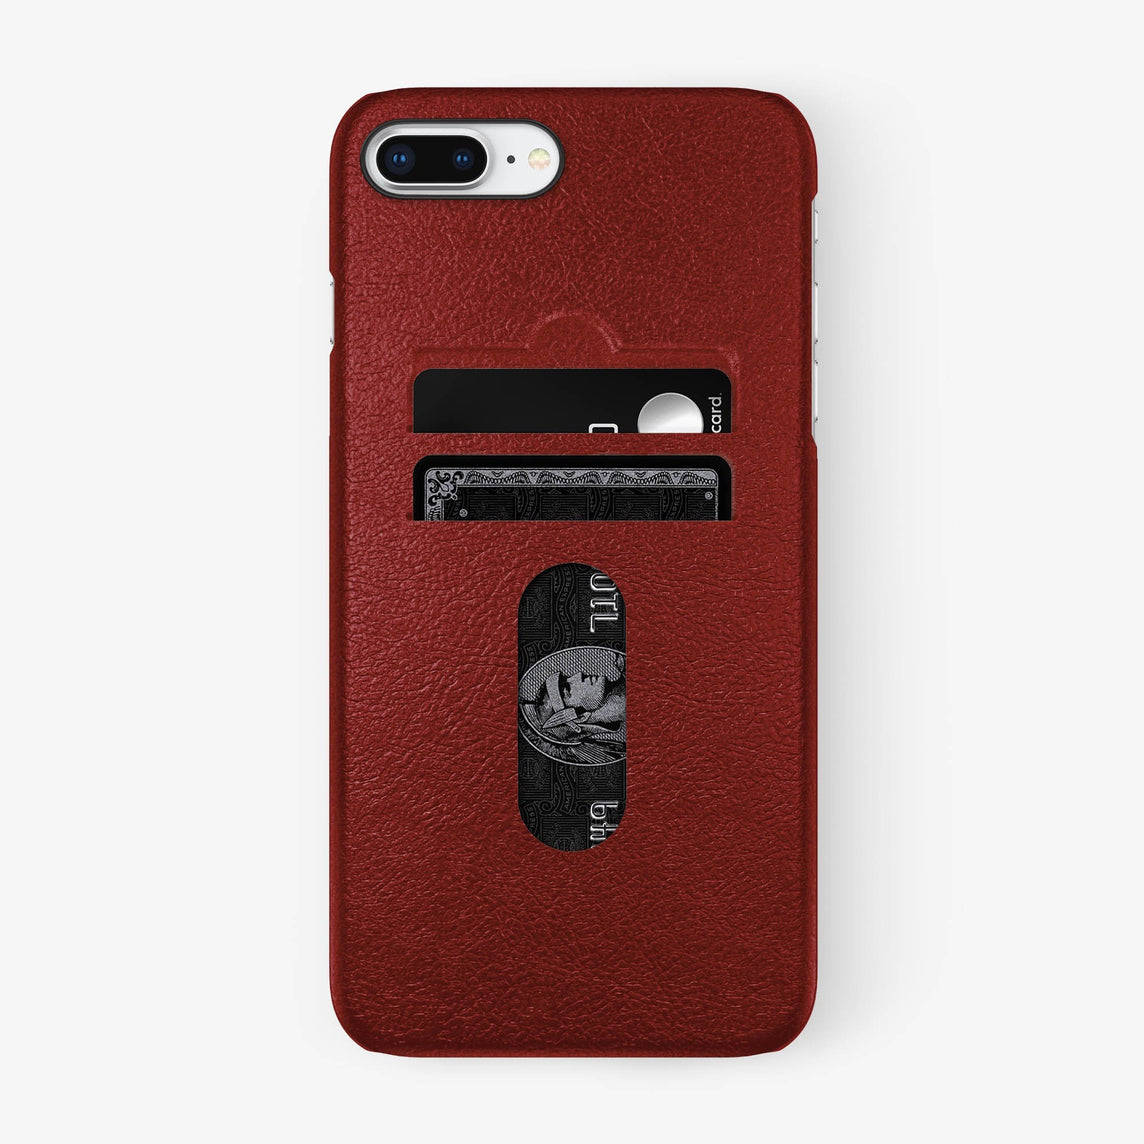 Red Calfskin iPhone Card Holder Case for iPhone 7/8 Plus finishing black - Hadoro Luxury Cases